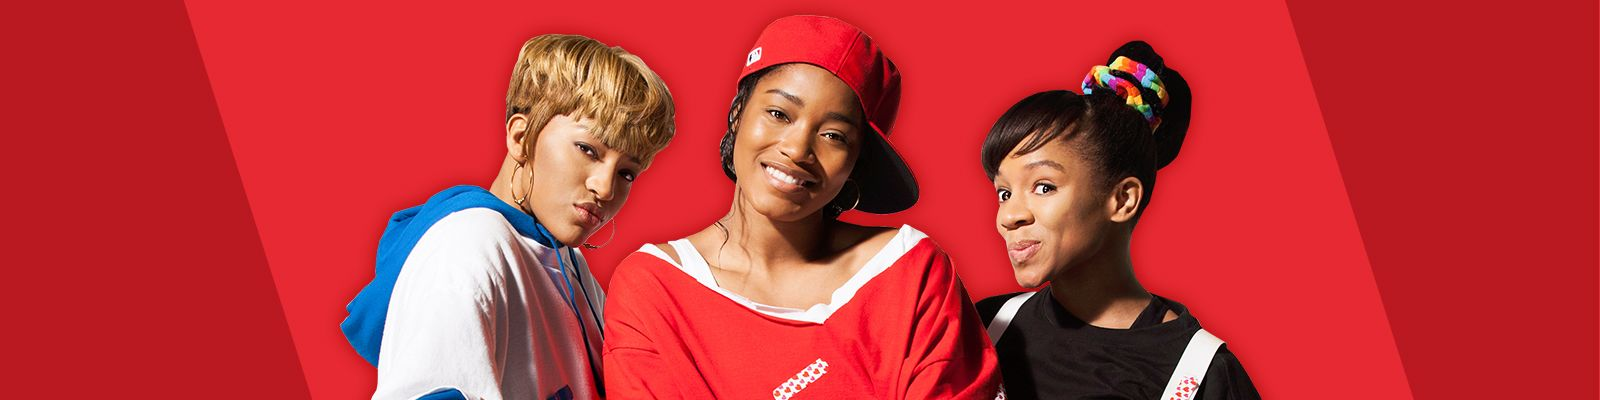 Crazysexycool the tlc story live stream